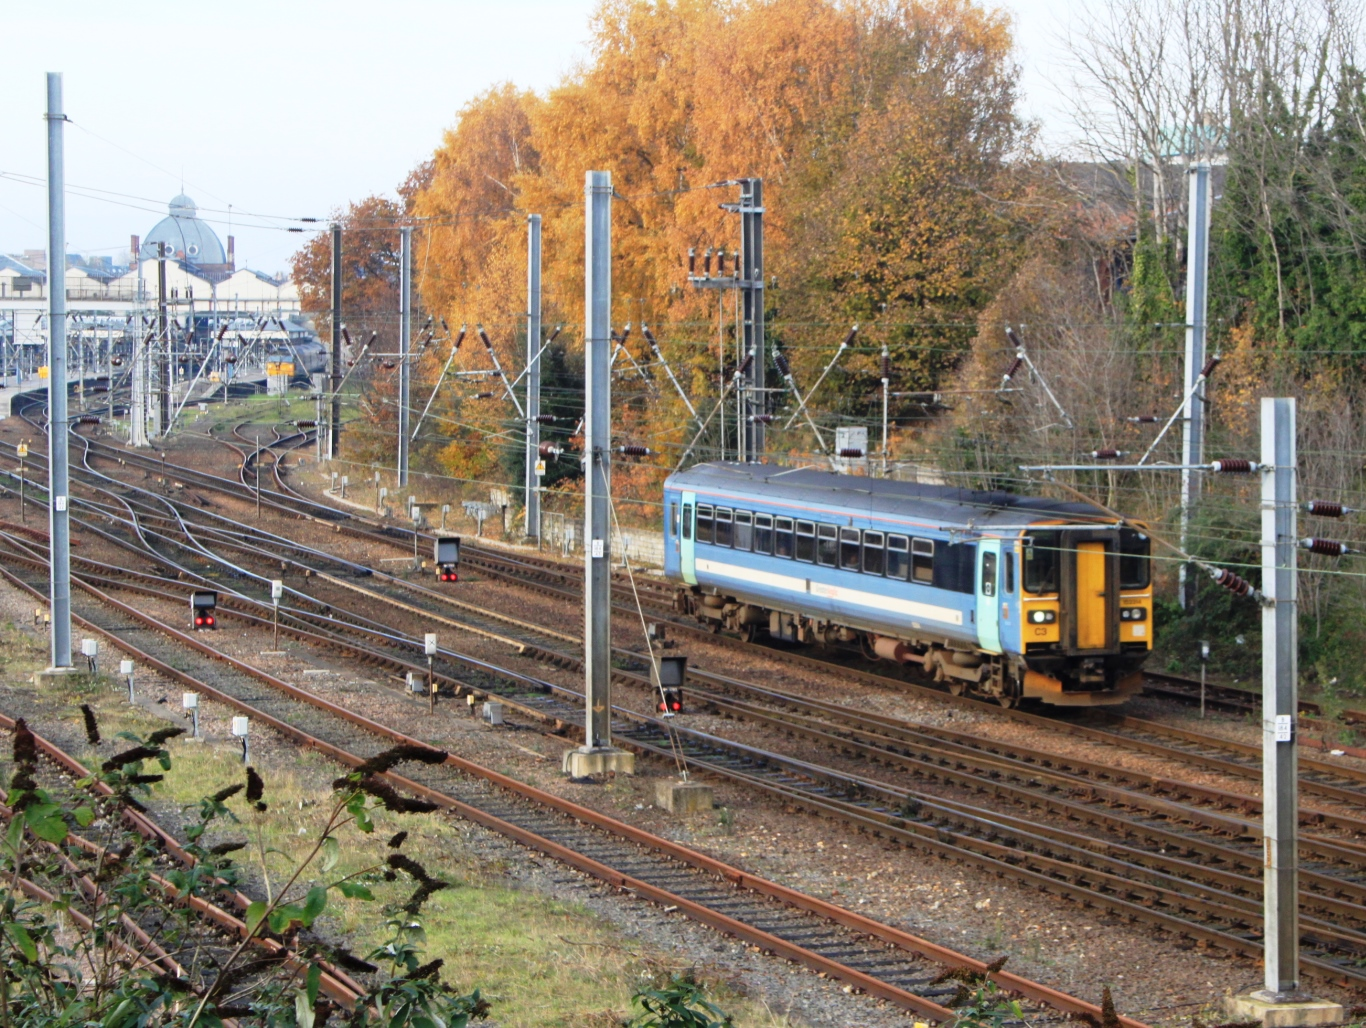 File:Norwich - Greater Anglia 153314 leaving for Lowestoft.jpg